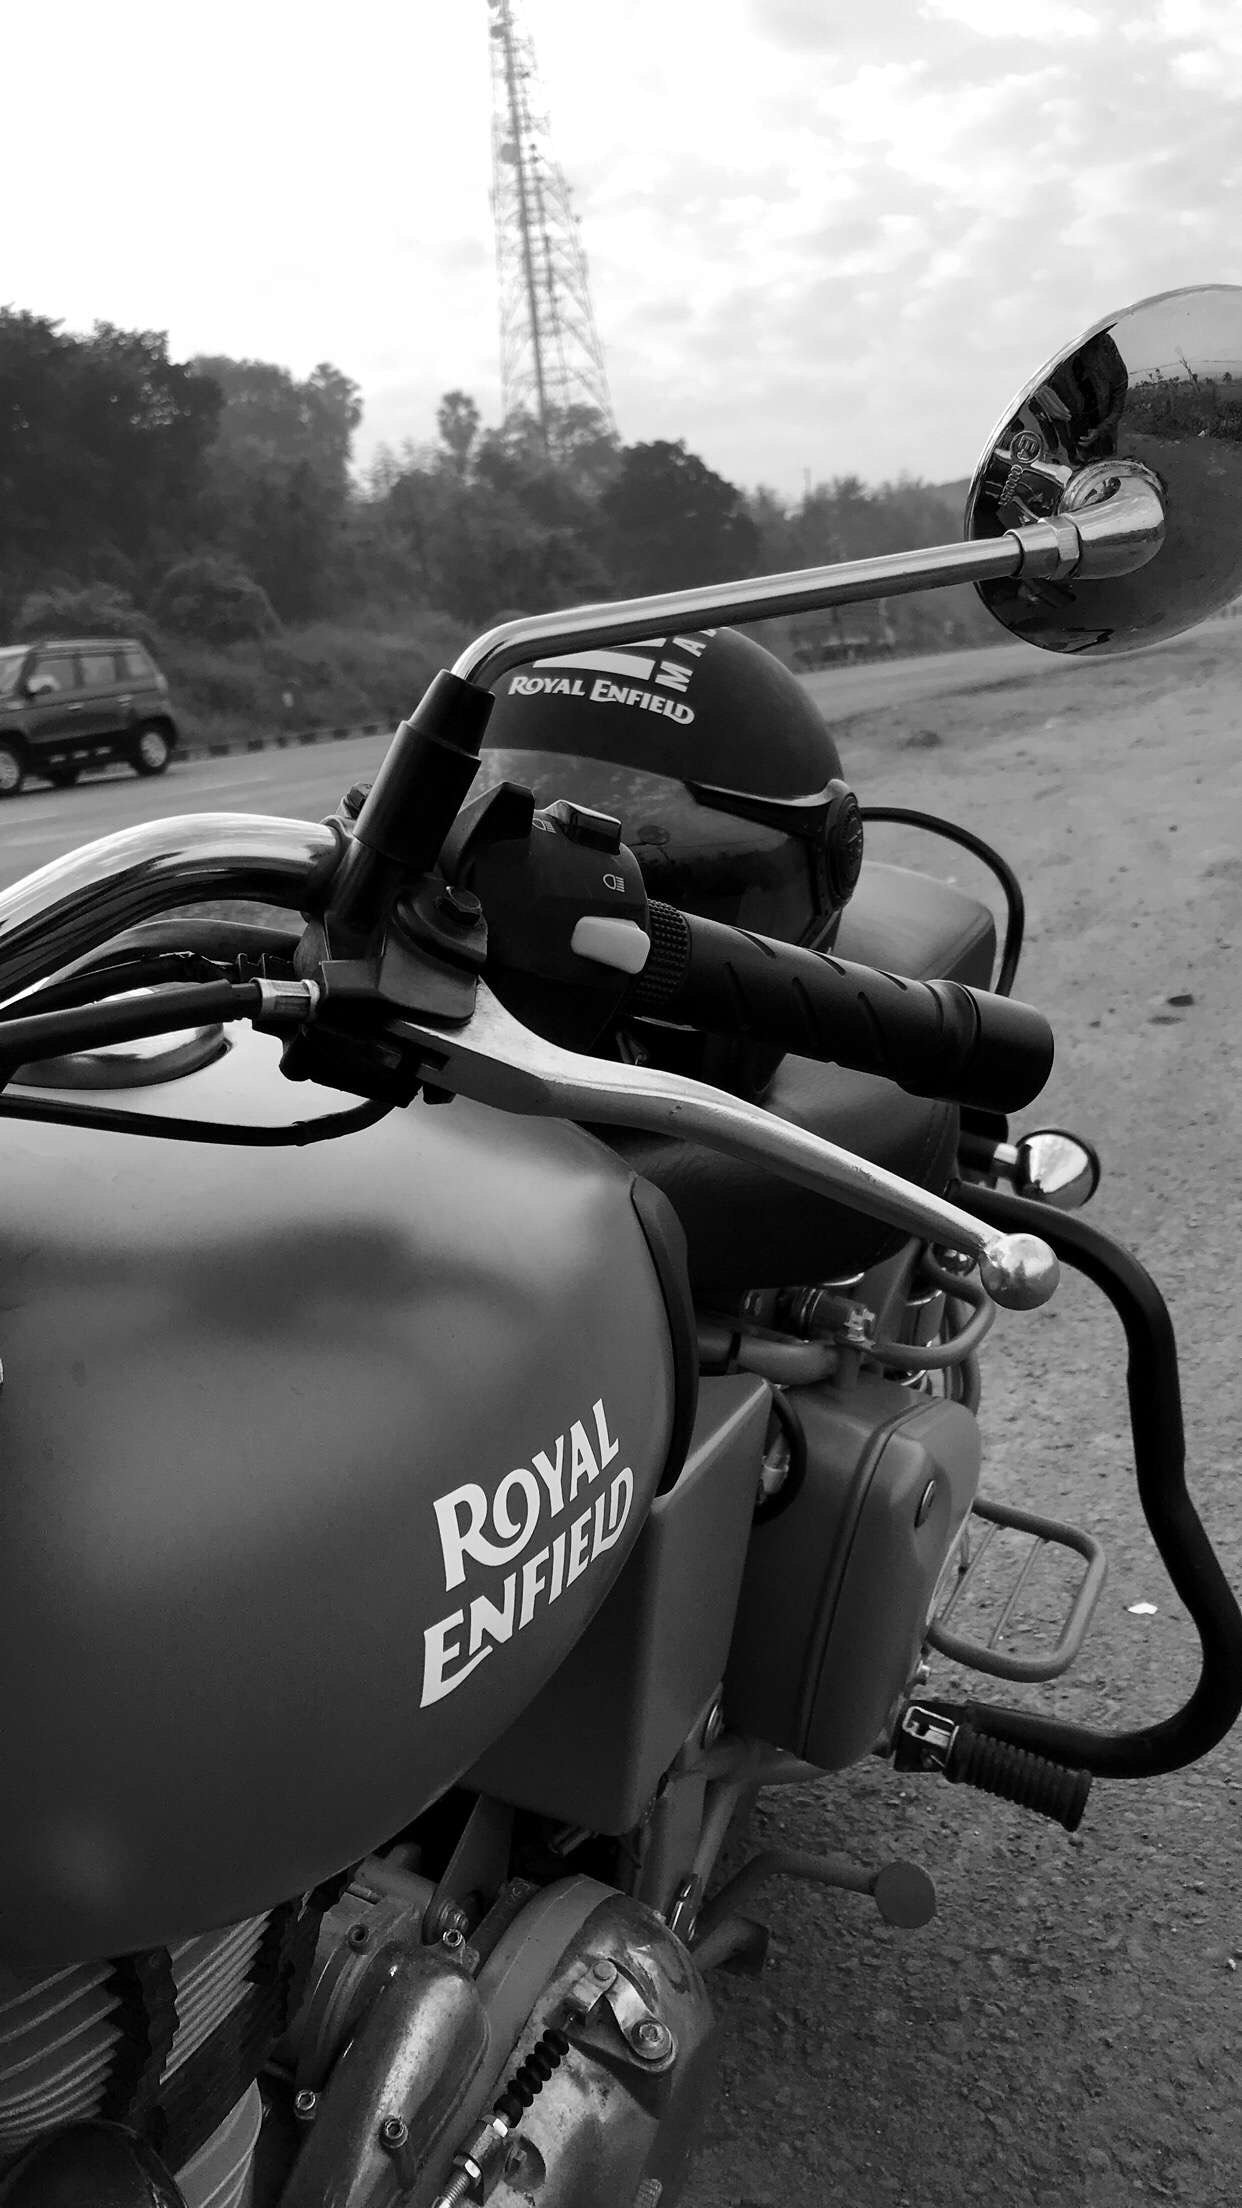 Royal Enfield Indian Motorcycle Grayscale Photo Free Stock